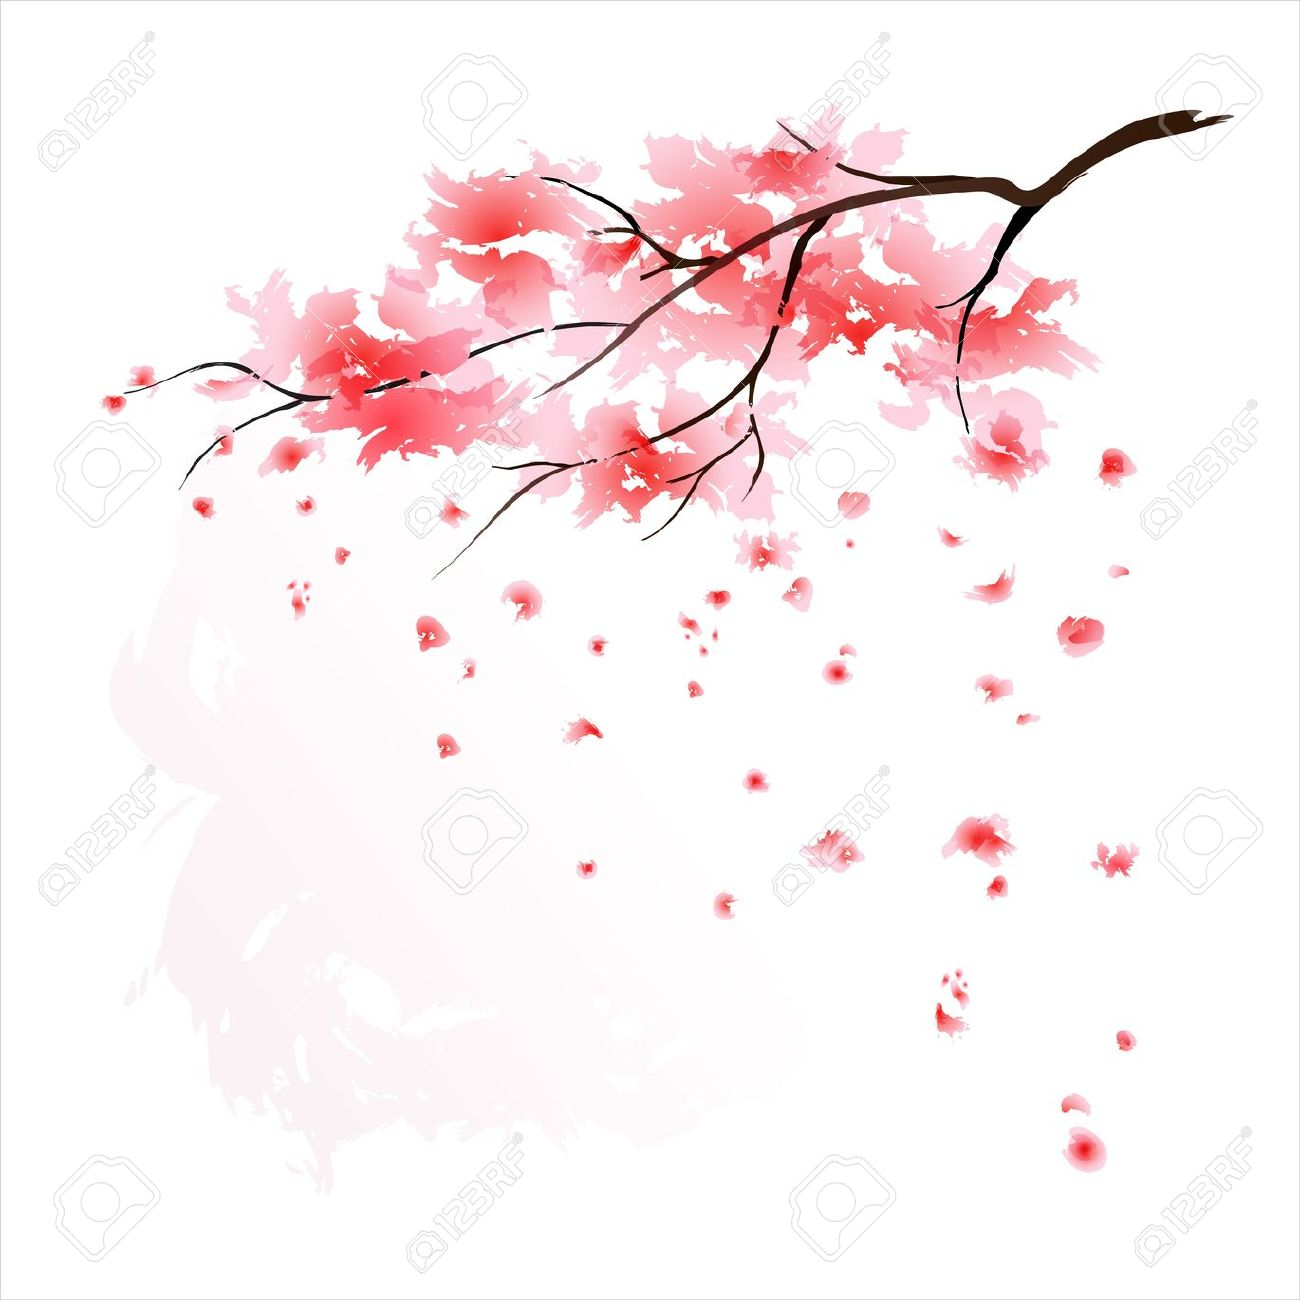 Drawn sakura blossom flower petal  Blossom artwork branch more!